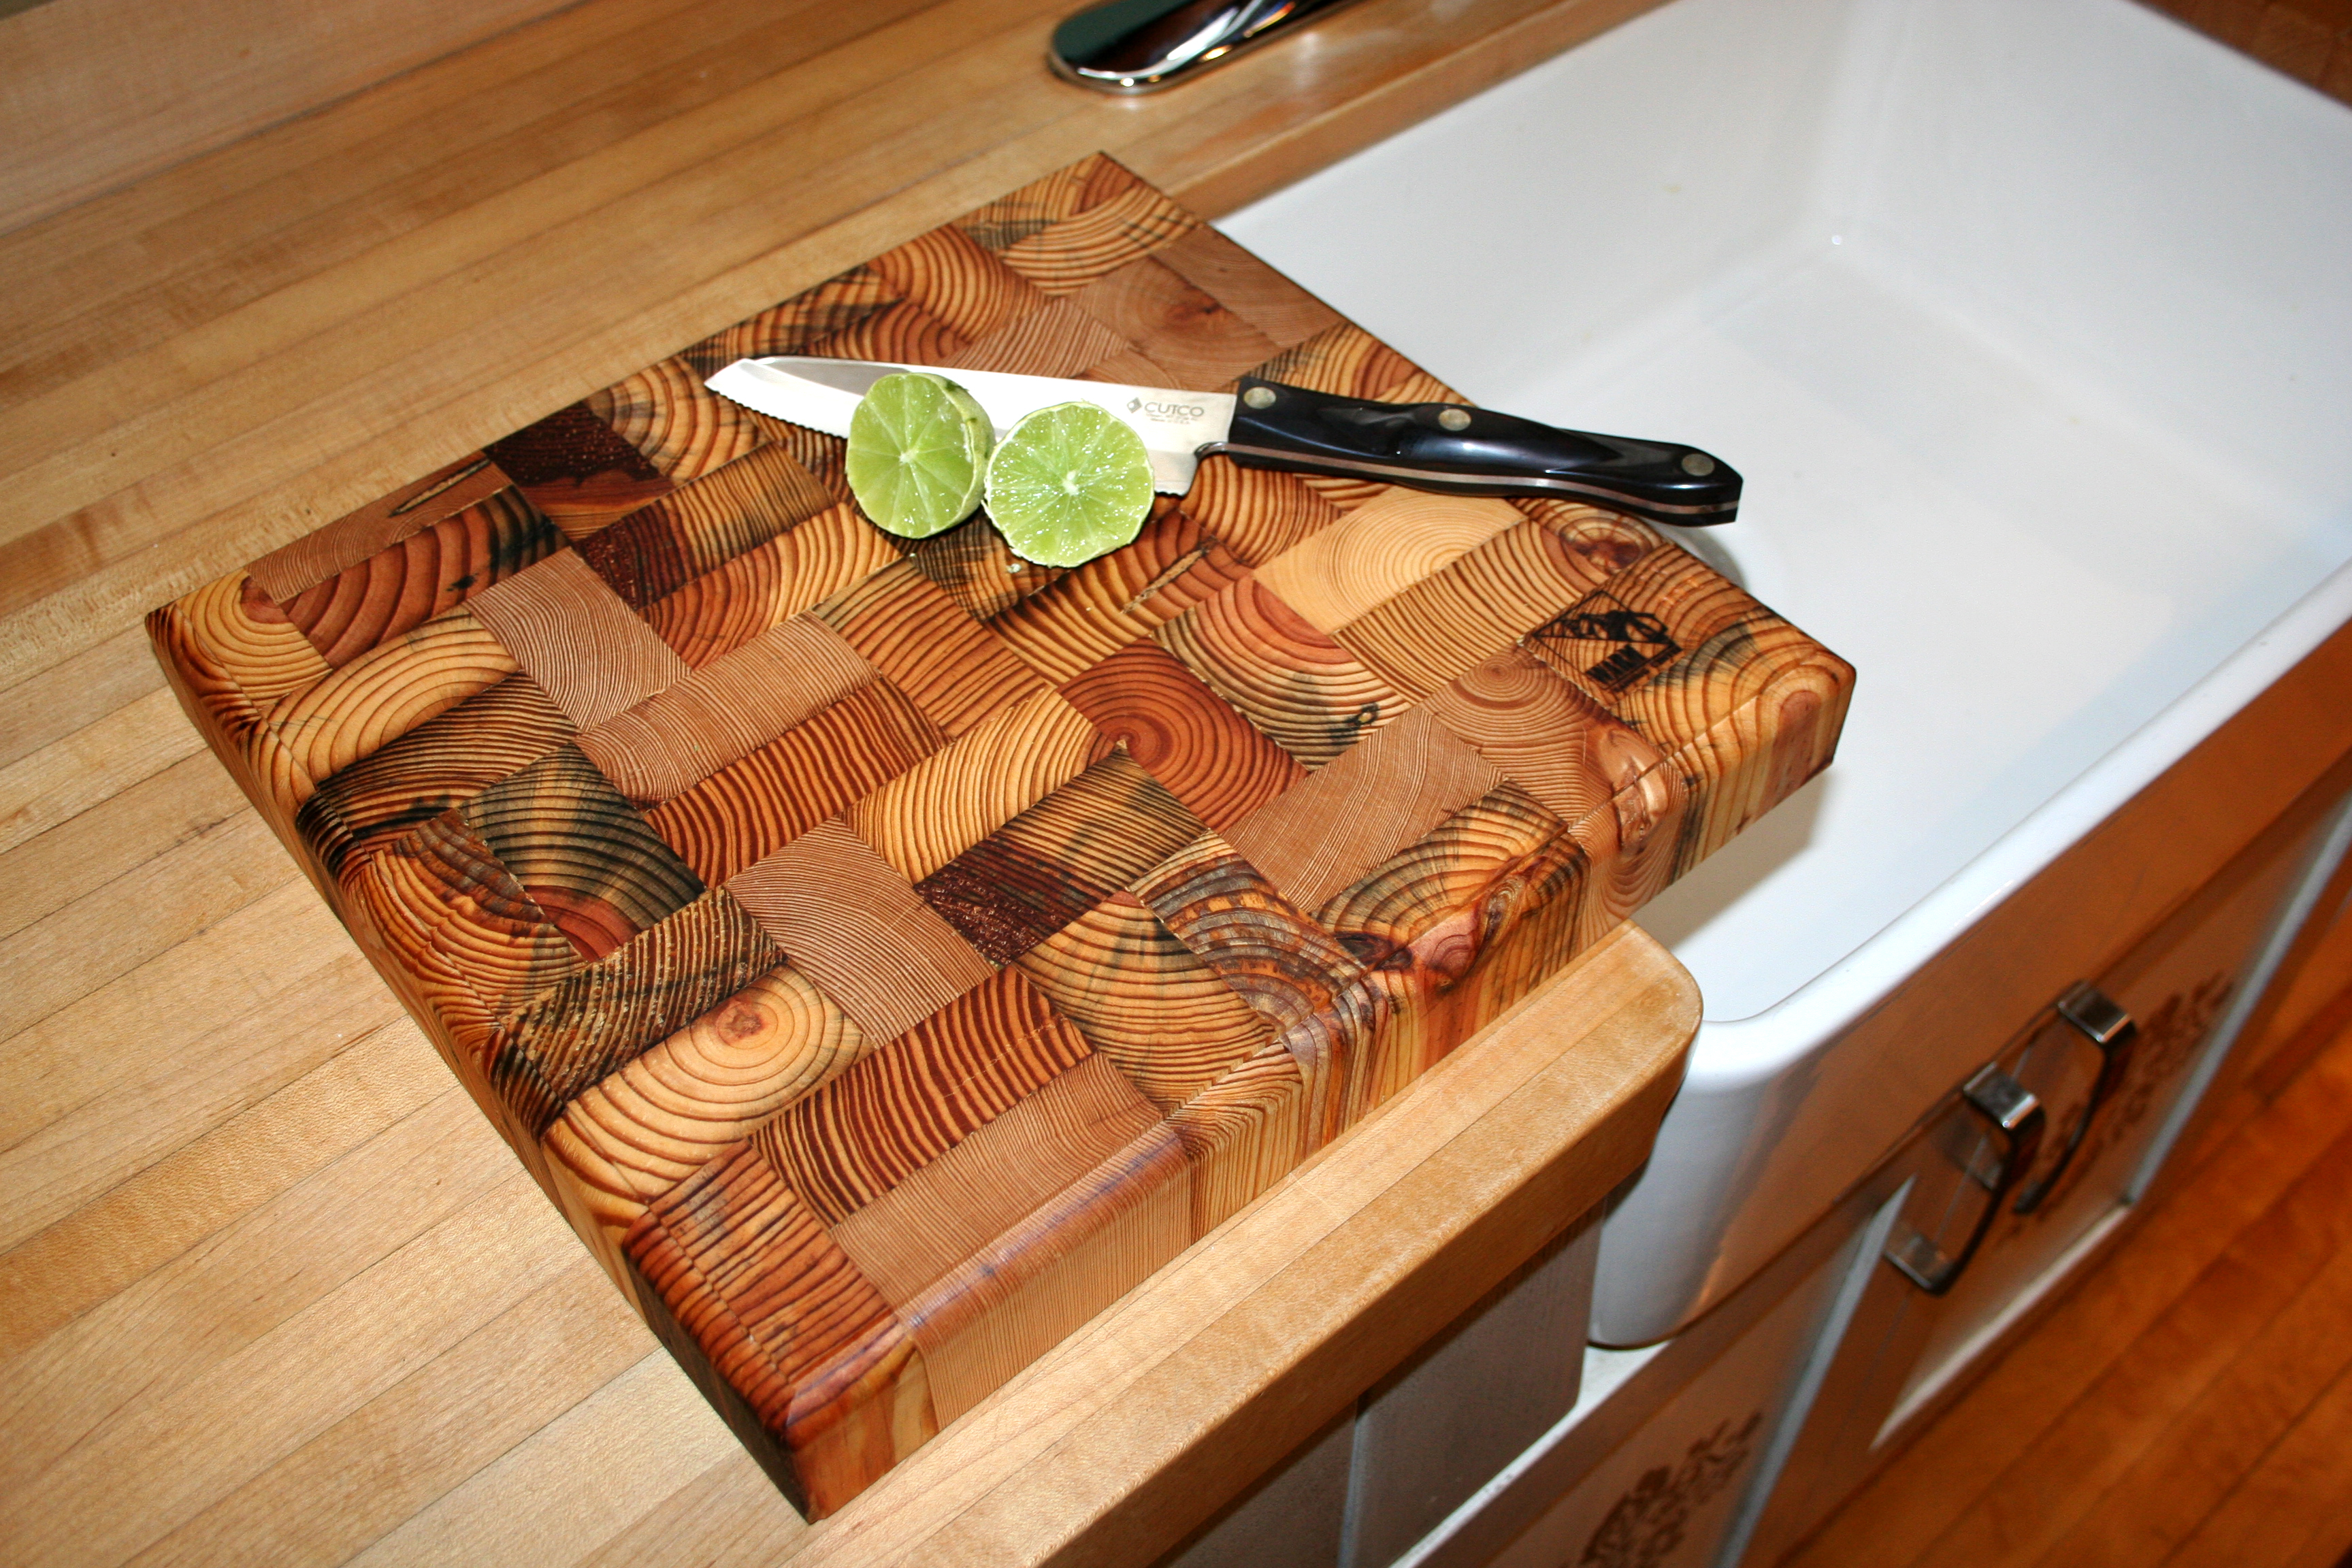 Do it yourself 2x4 wood projects solutioingenieria Choice Image